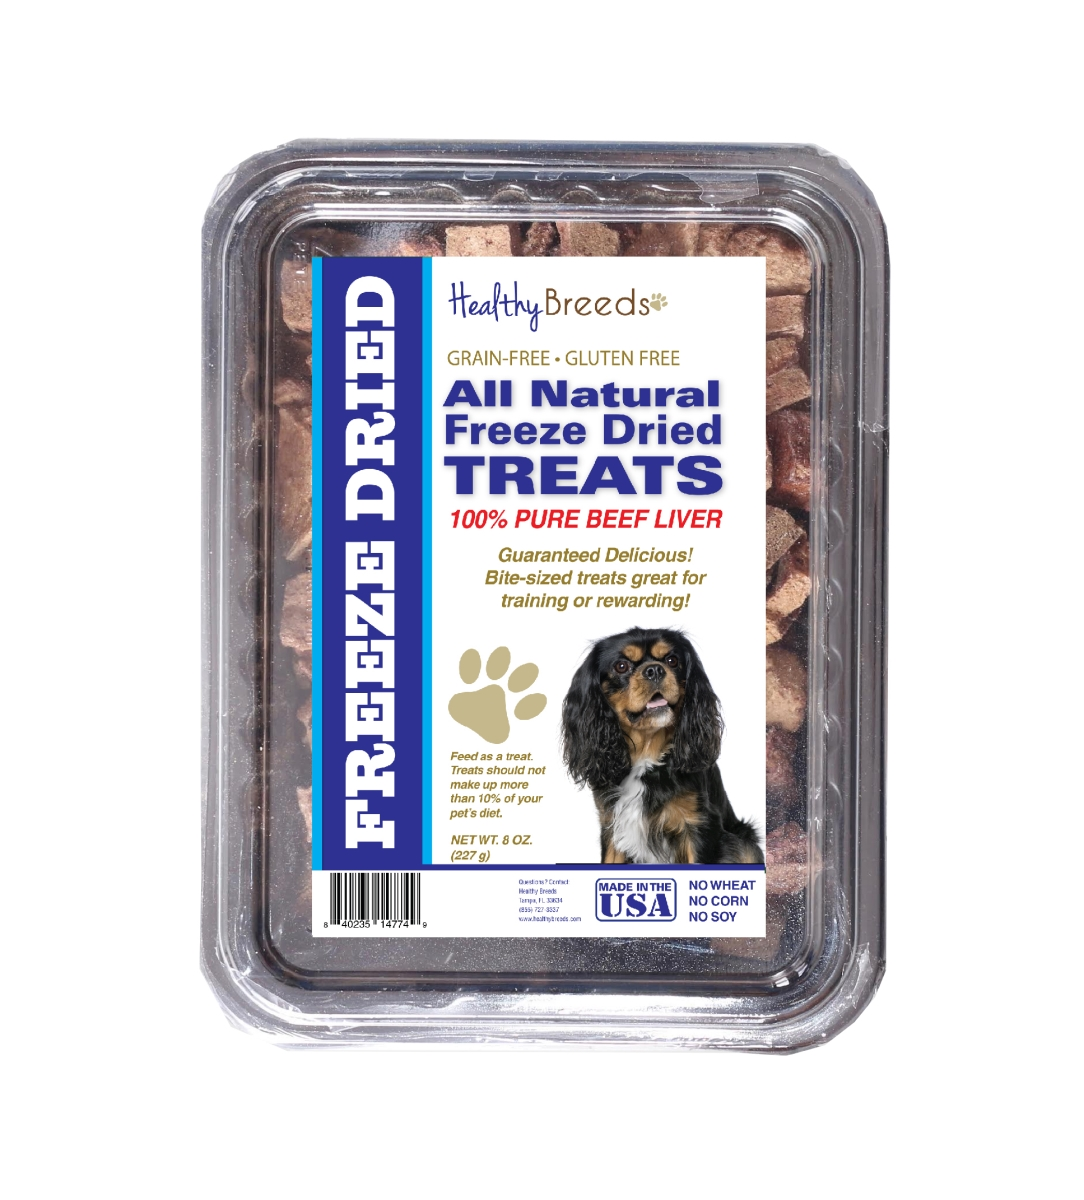 Healthy Breeds 840235147237 10 oz Cavalier King Charles Spaniel All Natural Freeze Dried Treats Beef Liver